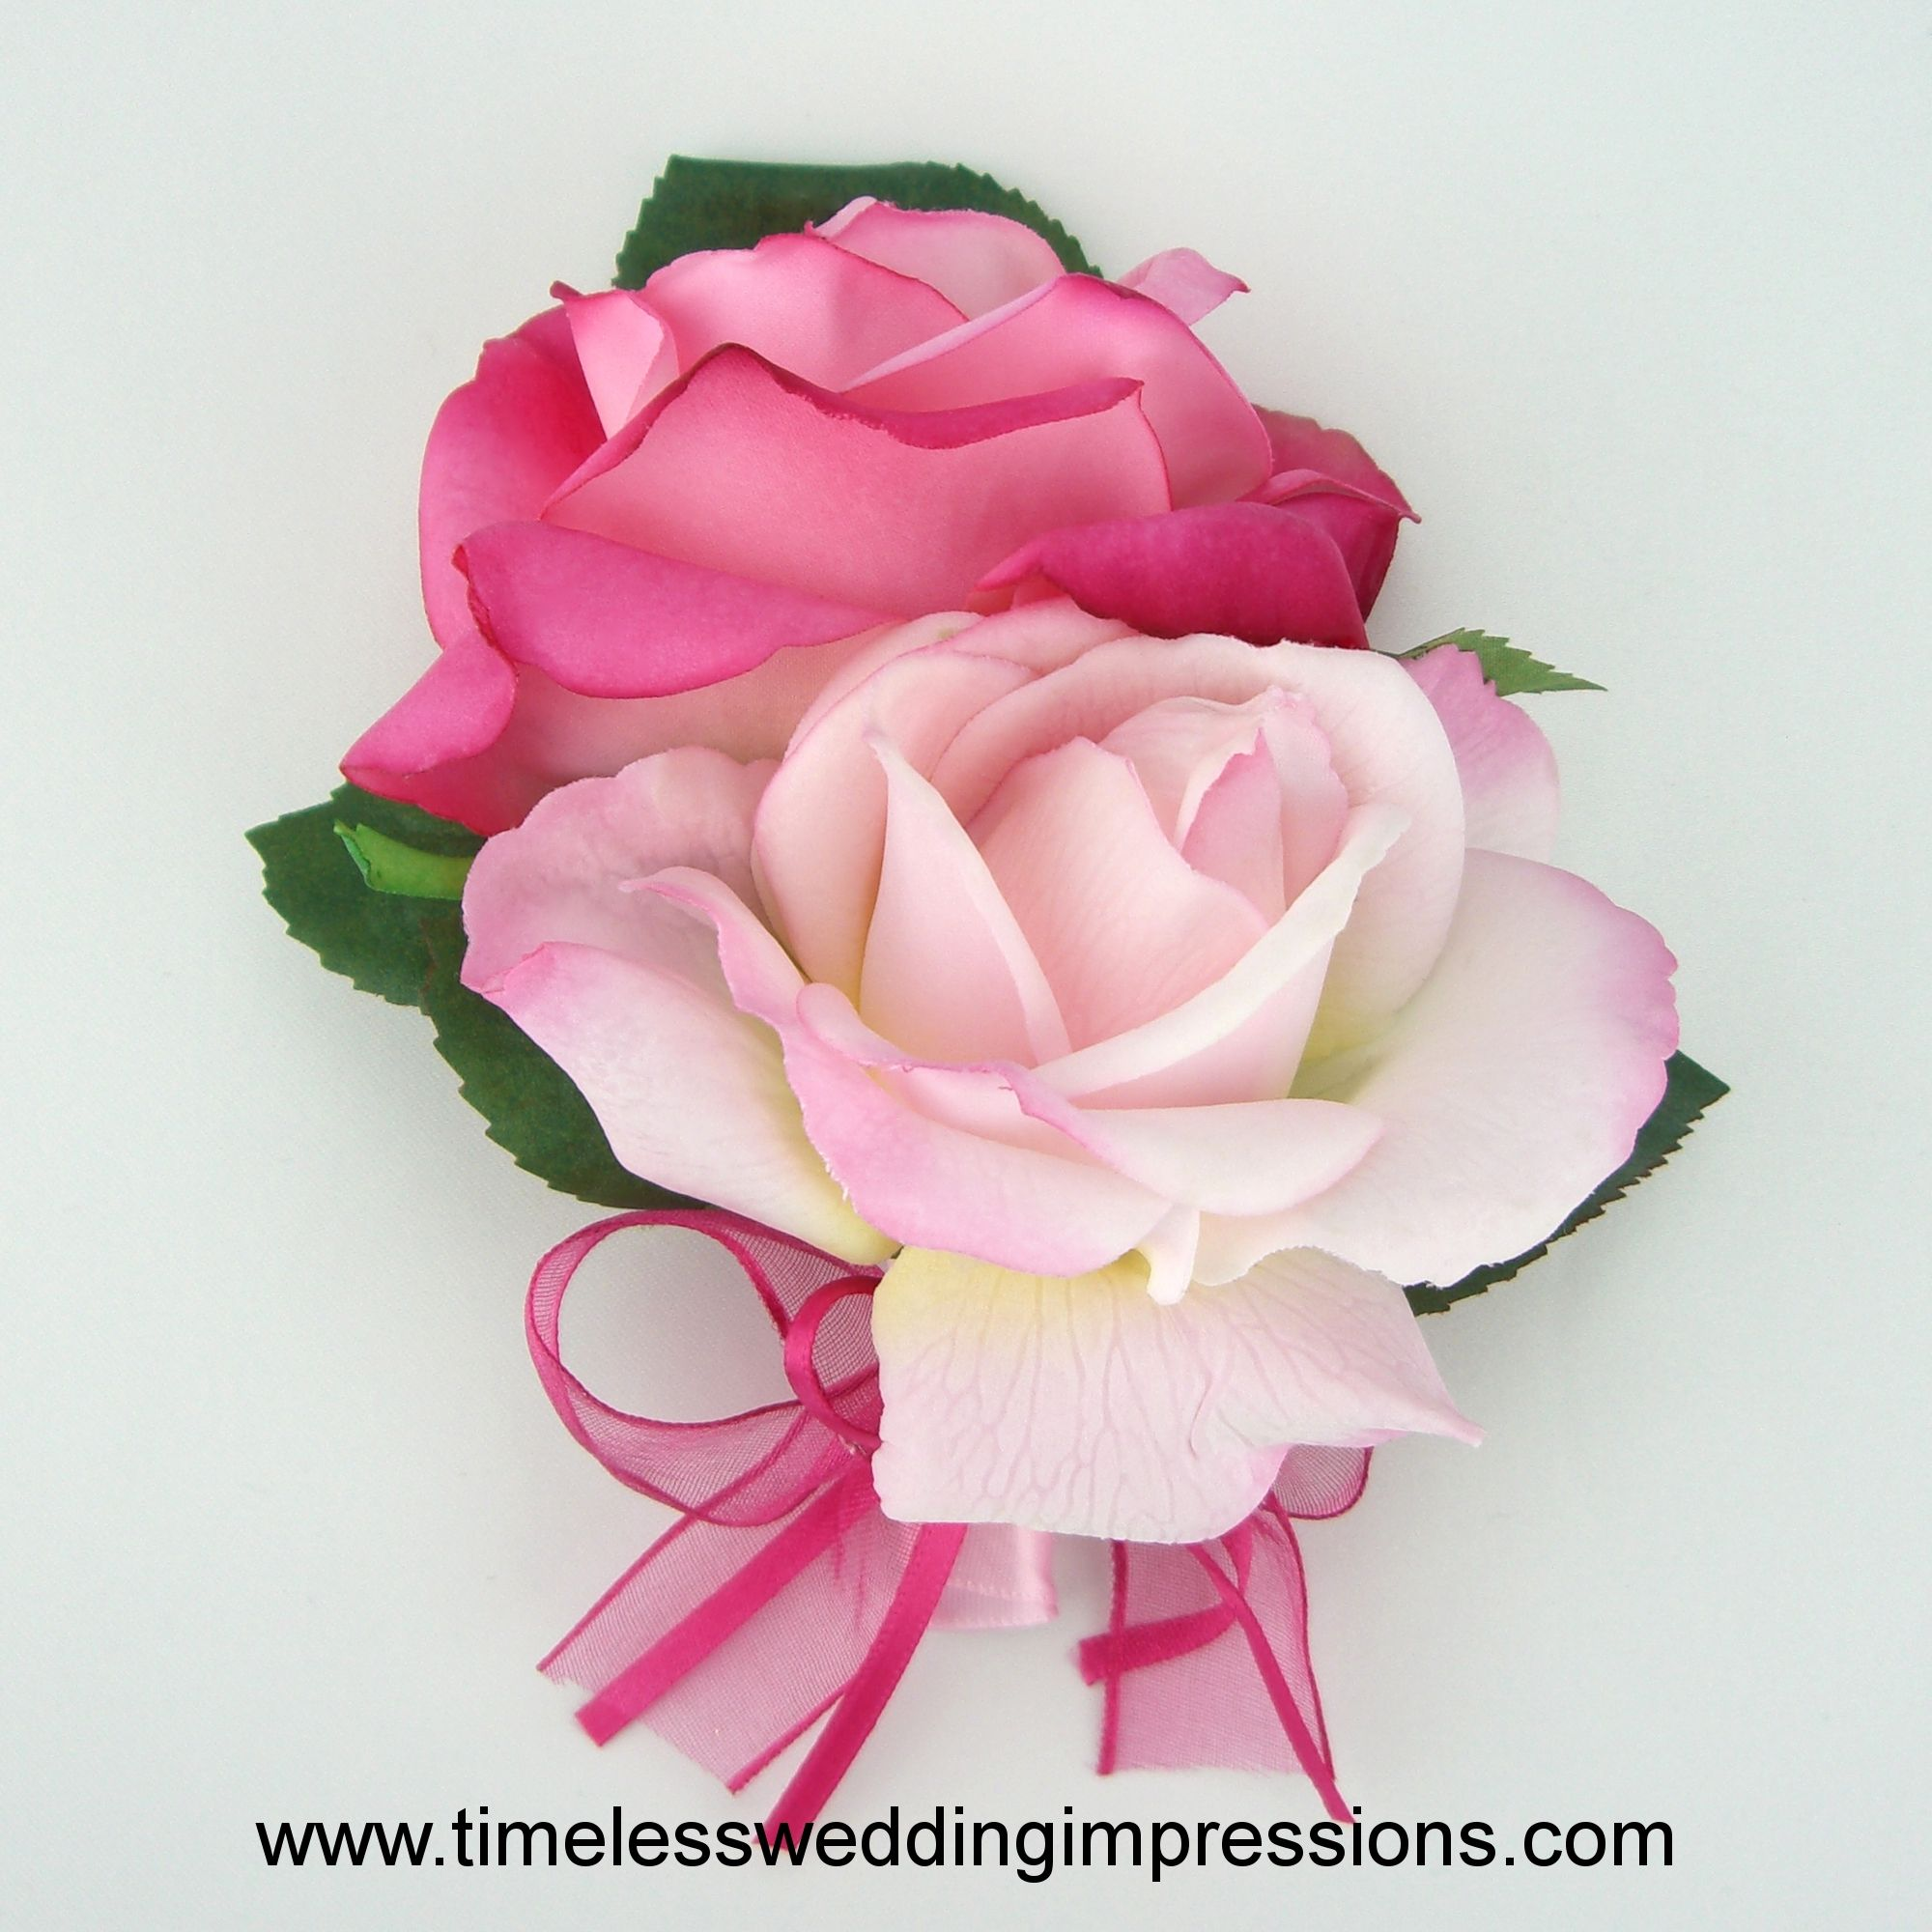 Silk flower arrangements for weddings roses corsage real touch silk flower arrangements for weddings roses corsage real touch silk wedding flowers pictured with hot mightylinksfo